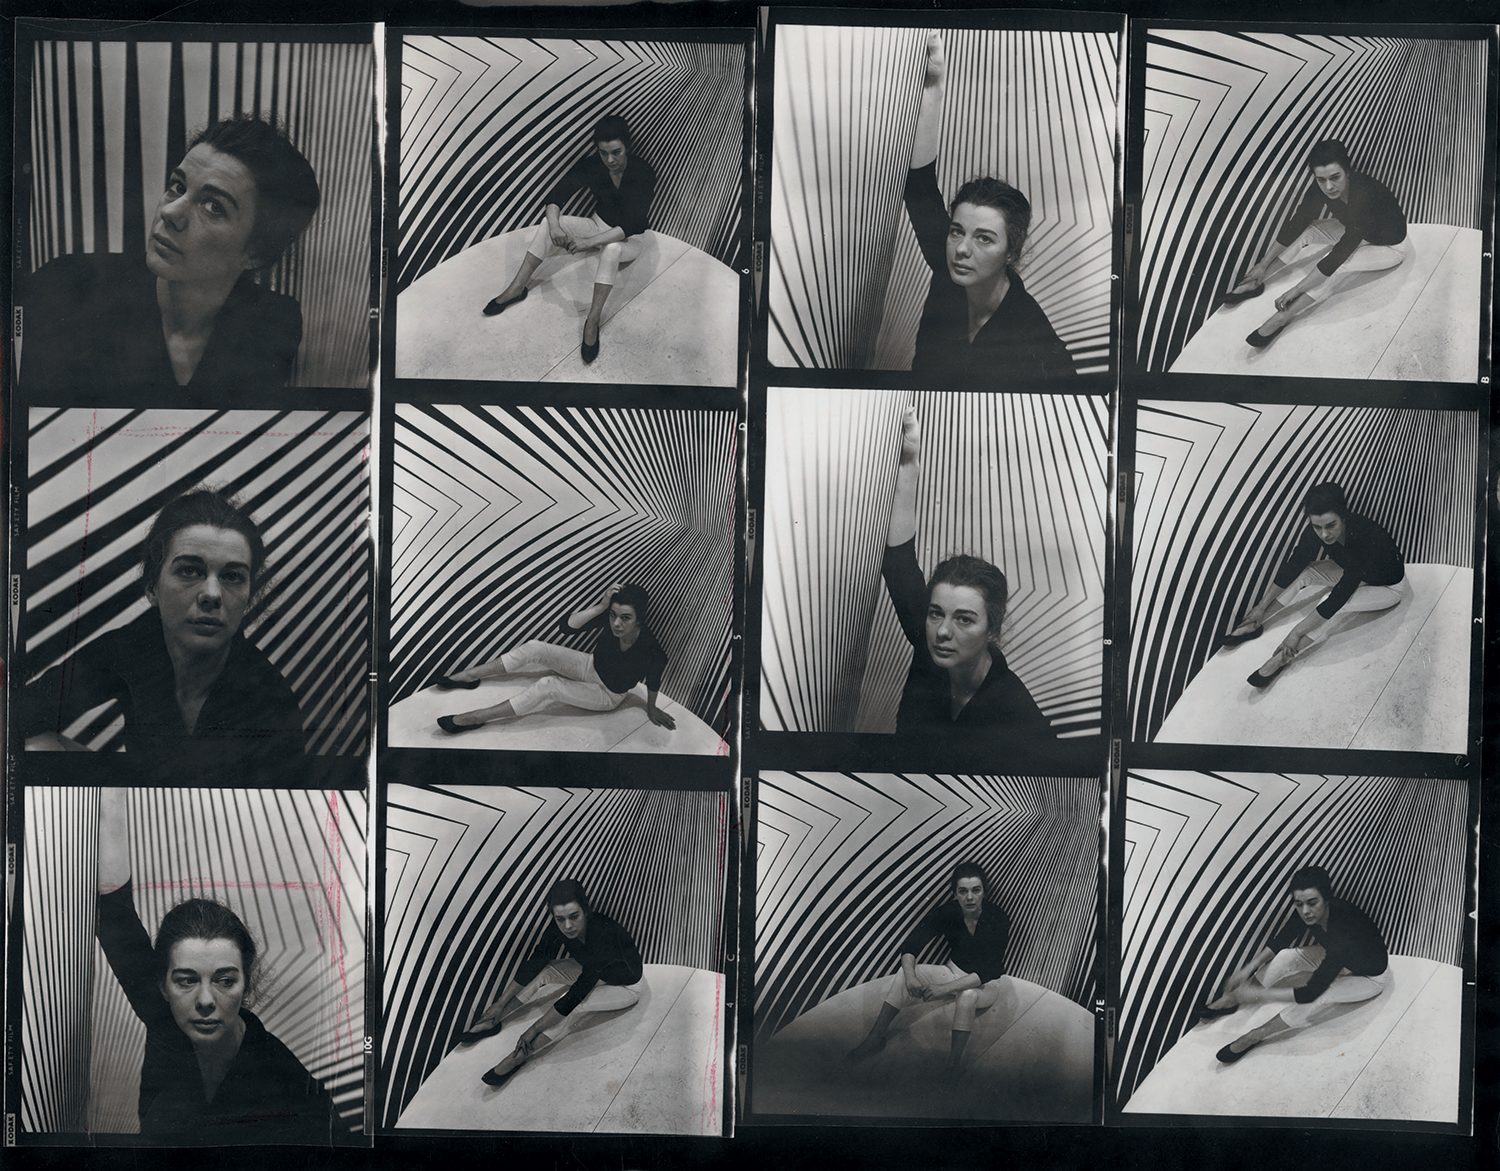 Bridget Riley inside Continuum, contact sheet by Ida Kar, 1963. National Portrait Gallery. From the book Bridget Riley A Very Very Person.